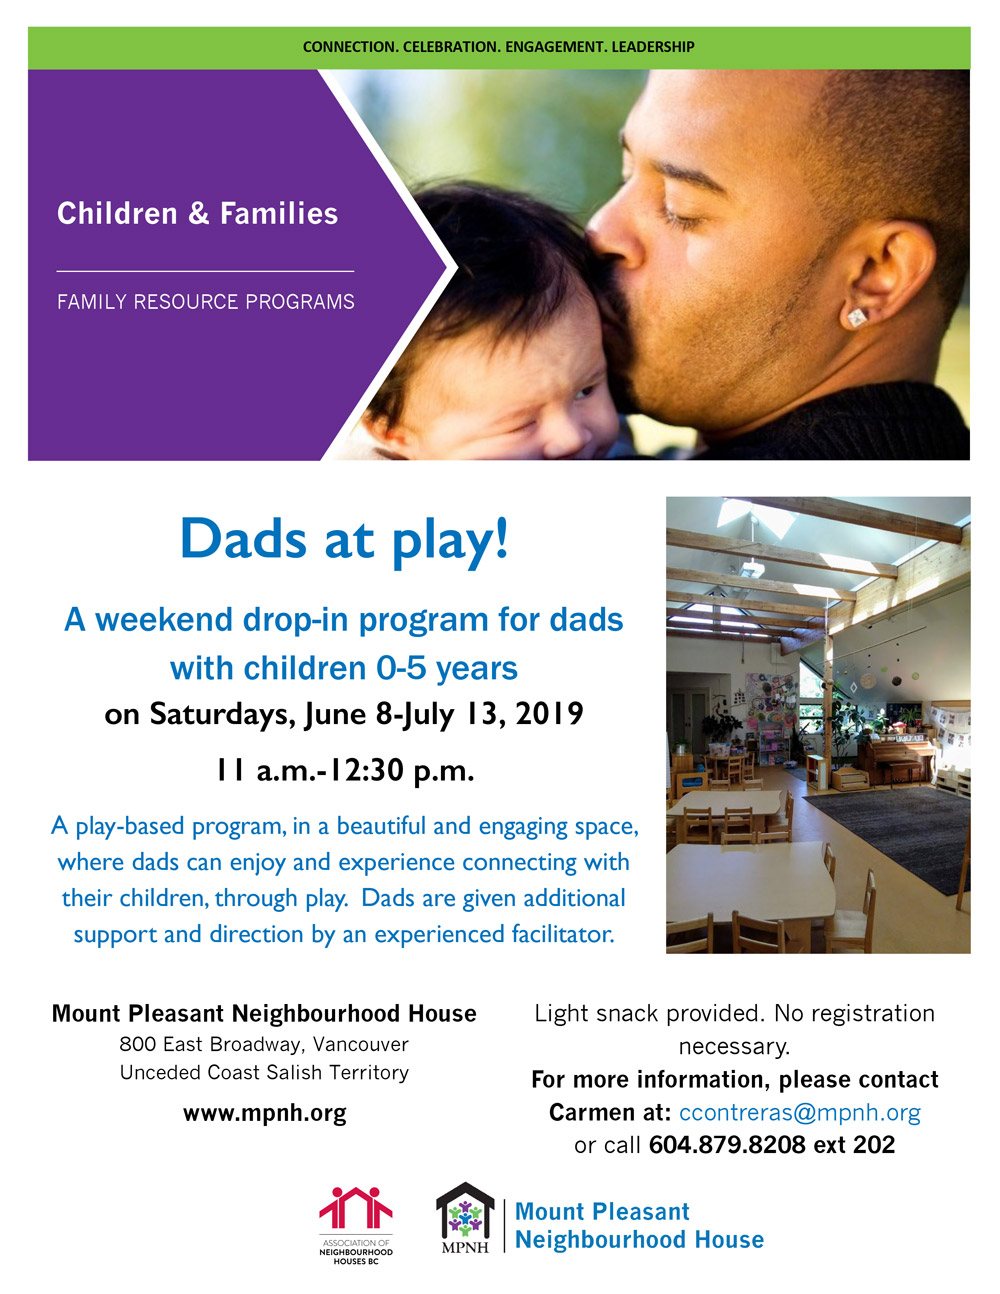 An image of the poster with program details, featuring a photo of a dad kissing his baby's head, and a photo of the preschool gathering space.